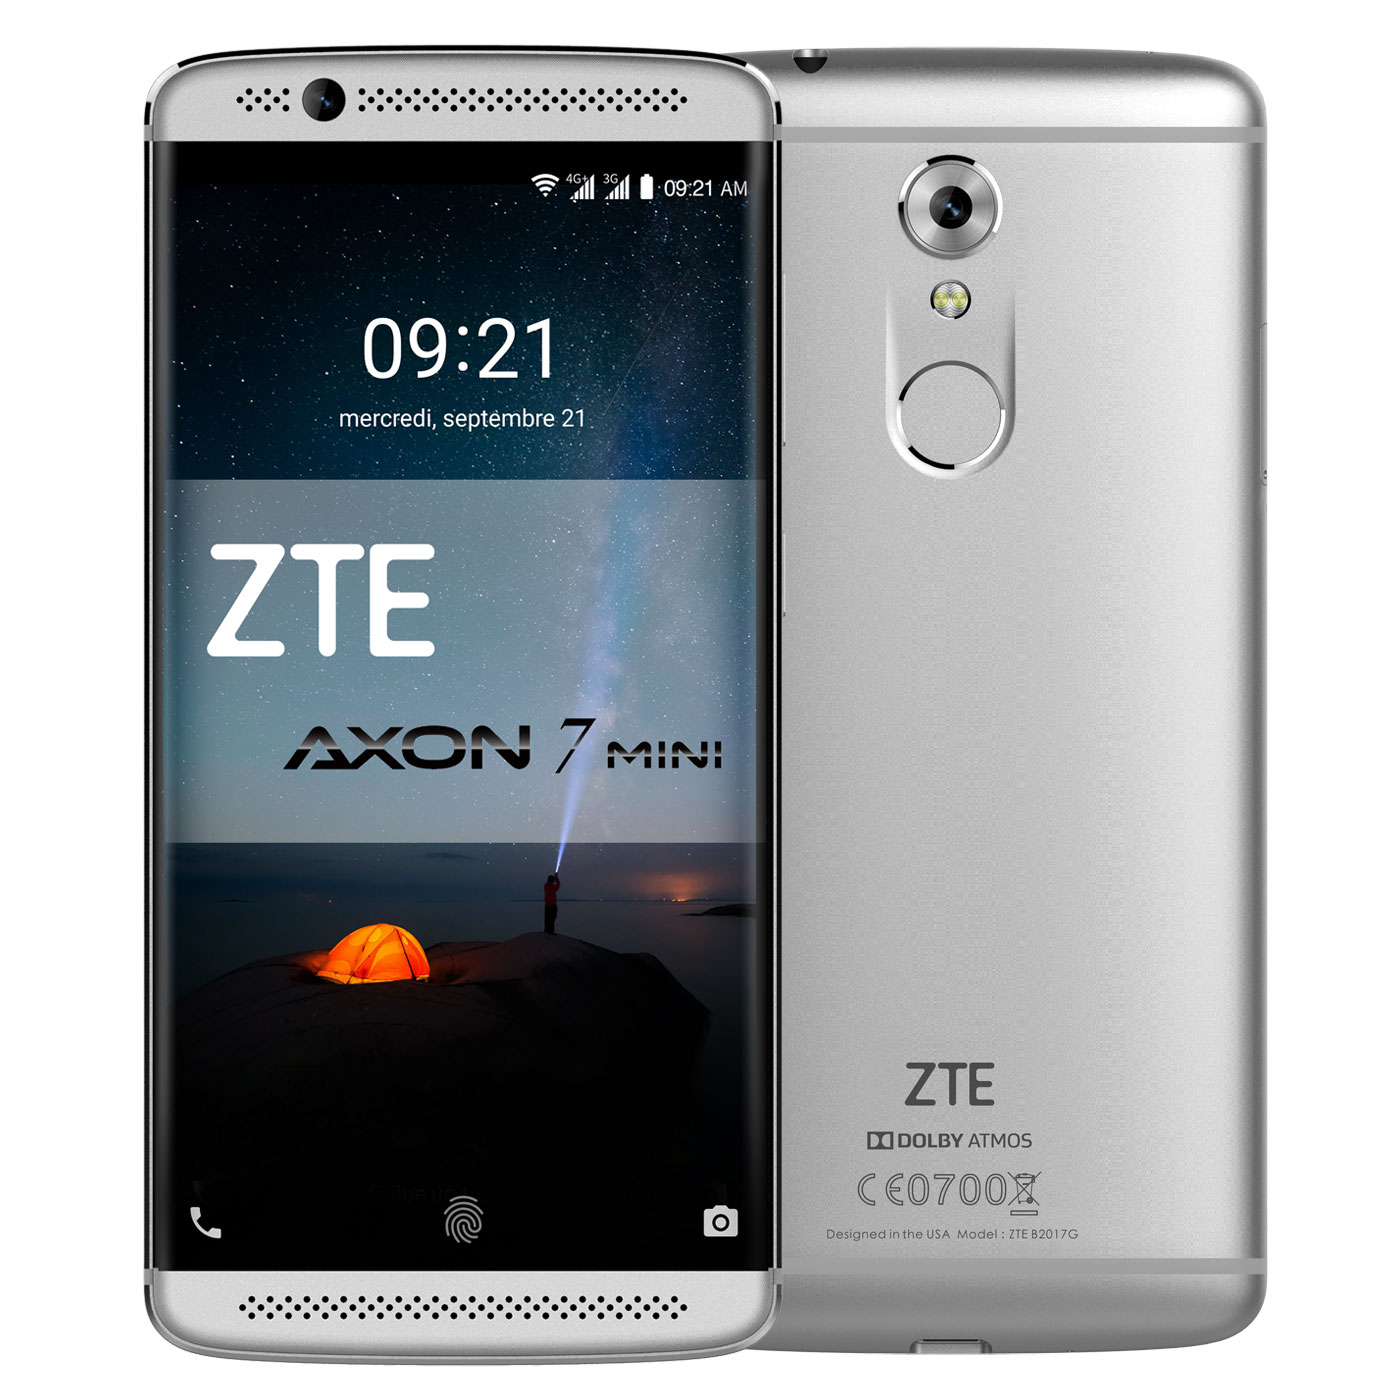 zte axon 7 mini gris axon7minion achat vente mobile smartphone sur. Black Bedroom Furniture Sets. Home Design Ideas